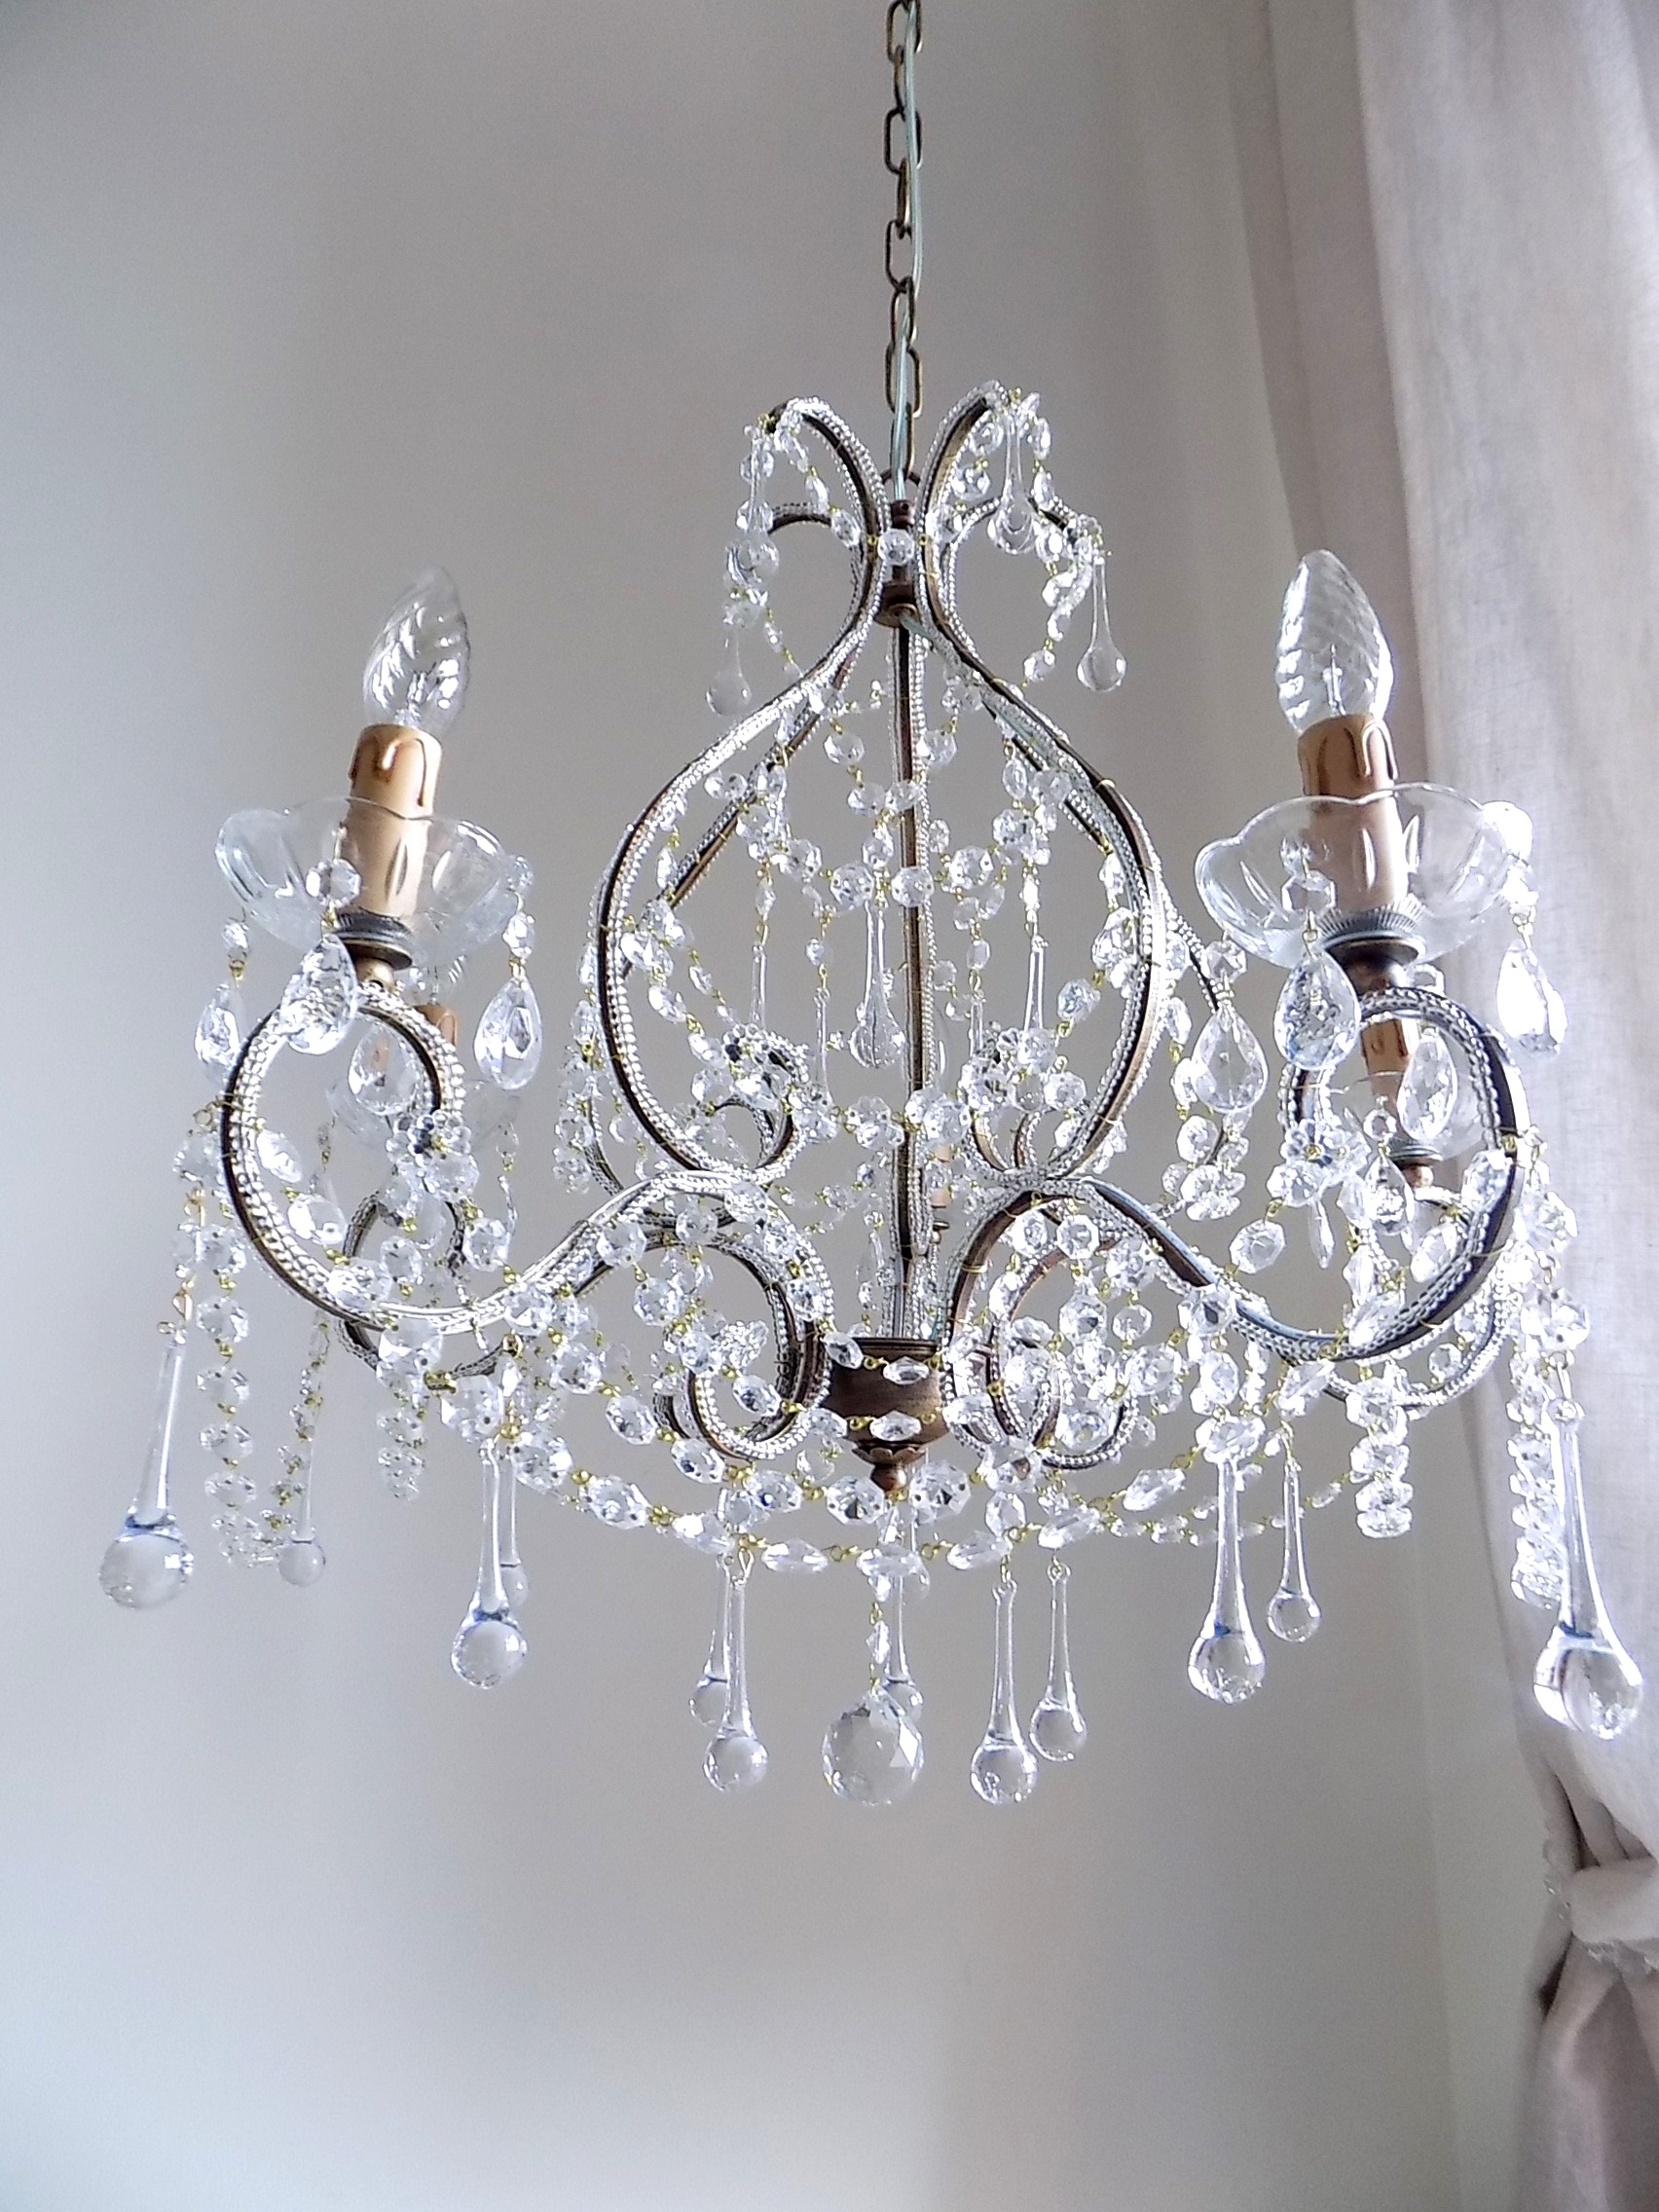 Arianna clear crystal chandelier 5 arms lorella dia lightbox aloadofball Image collections